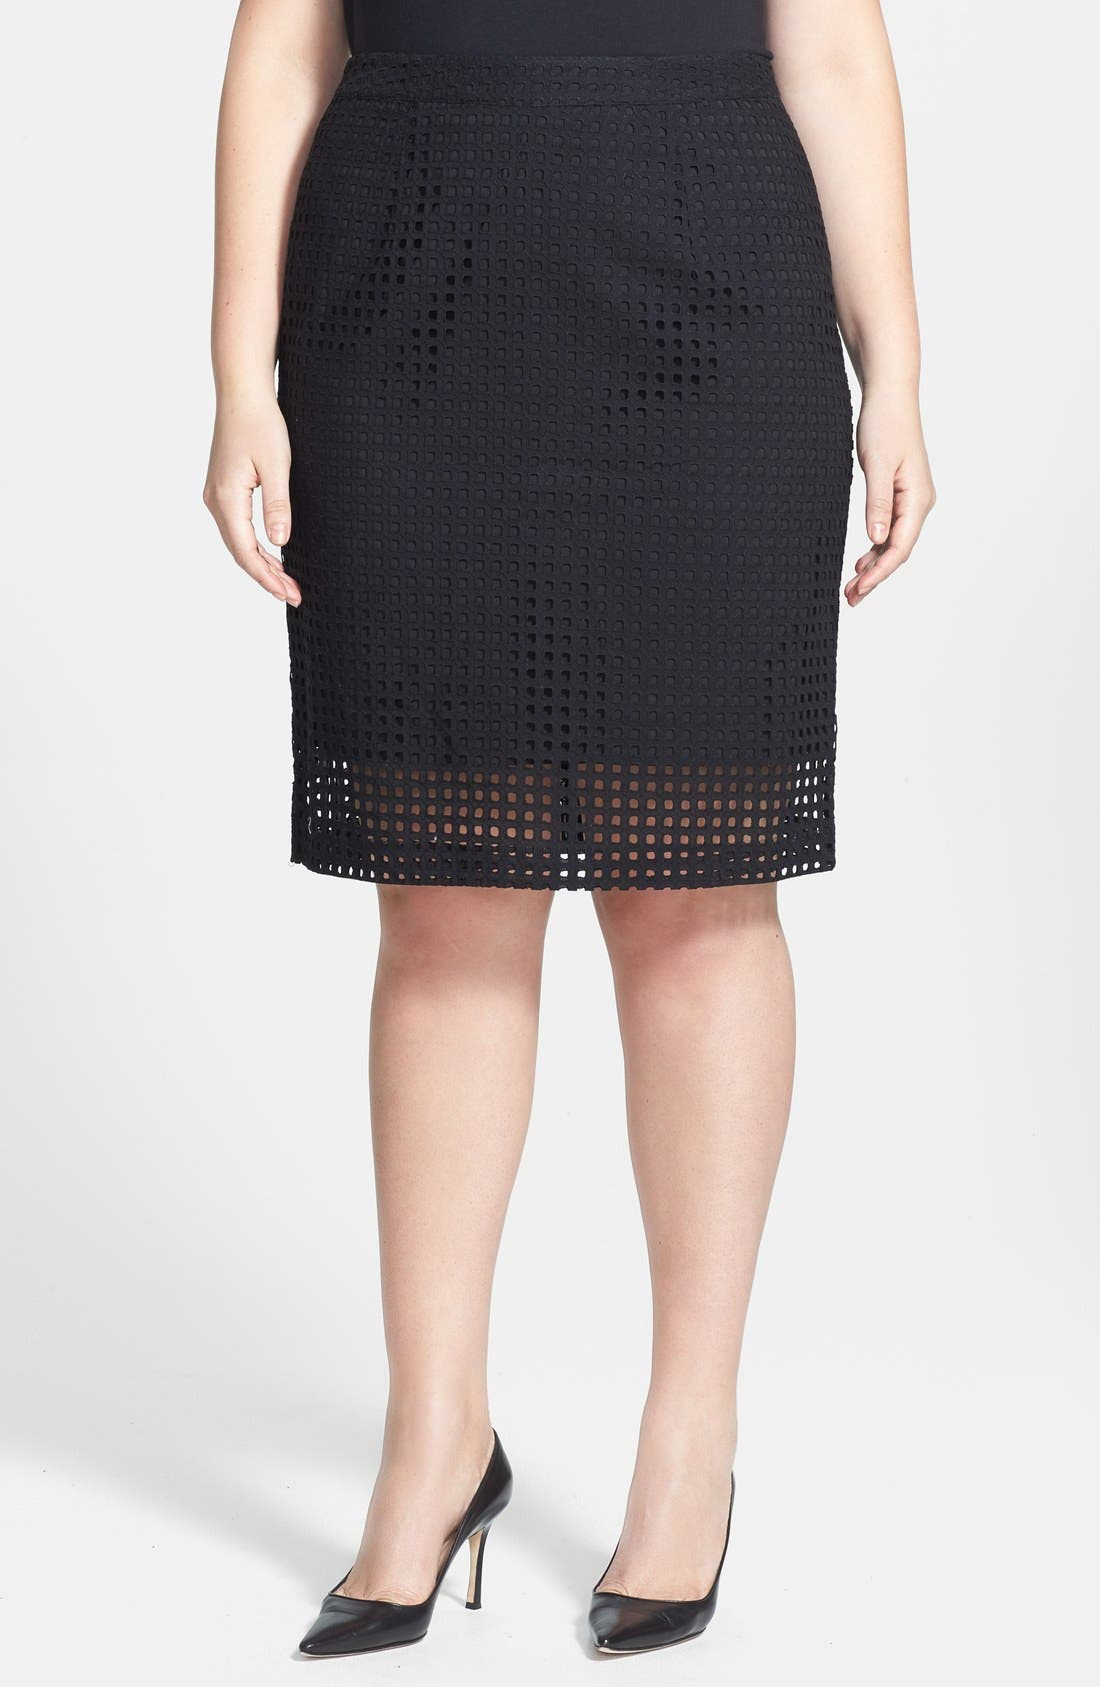 Alternate Image 1 Selected - Halogen® 'Prism' Eyelet Cotton Pencil Skirt (Plus Size)